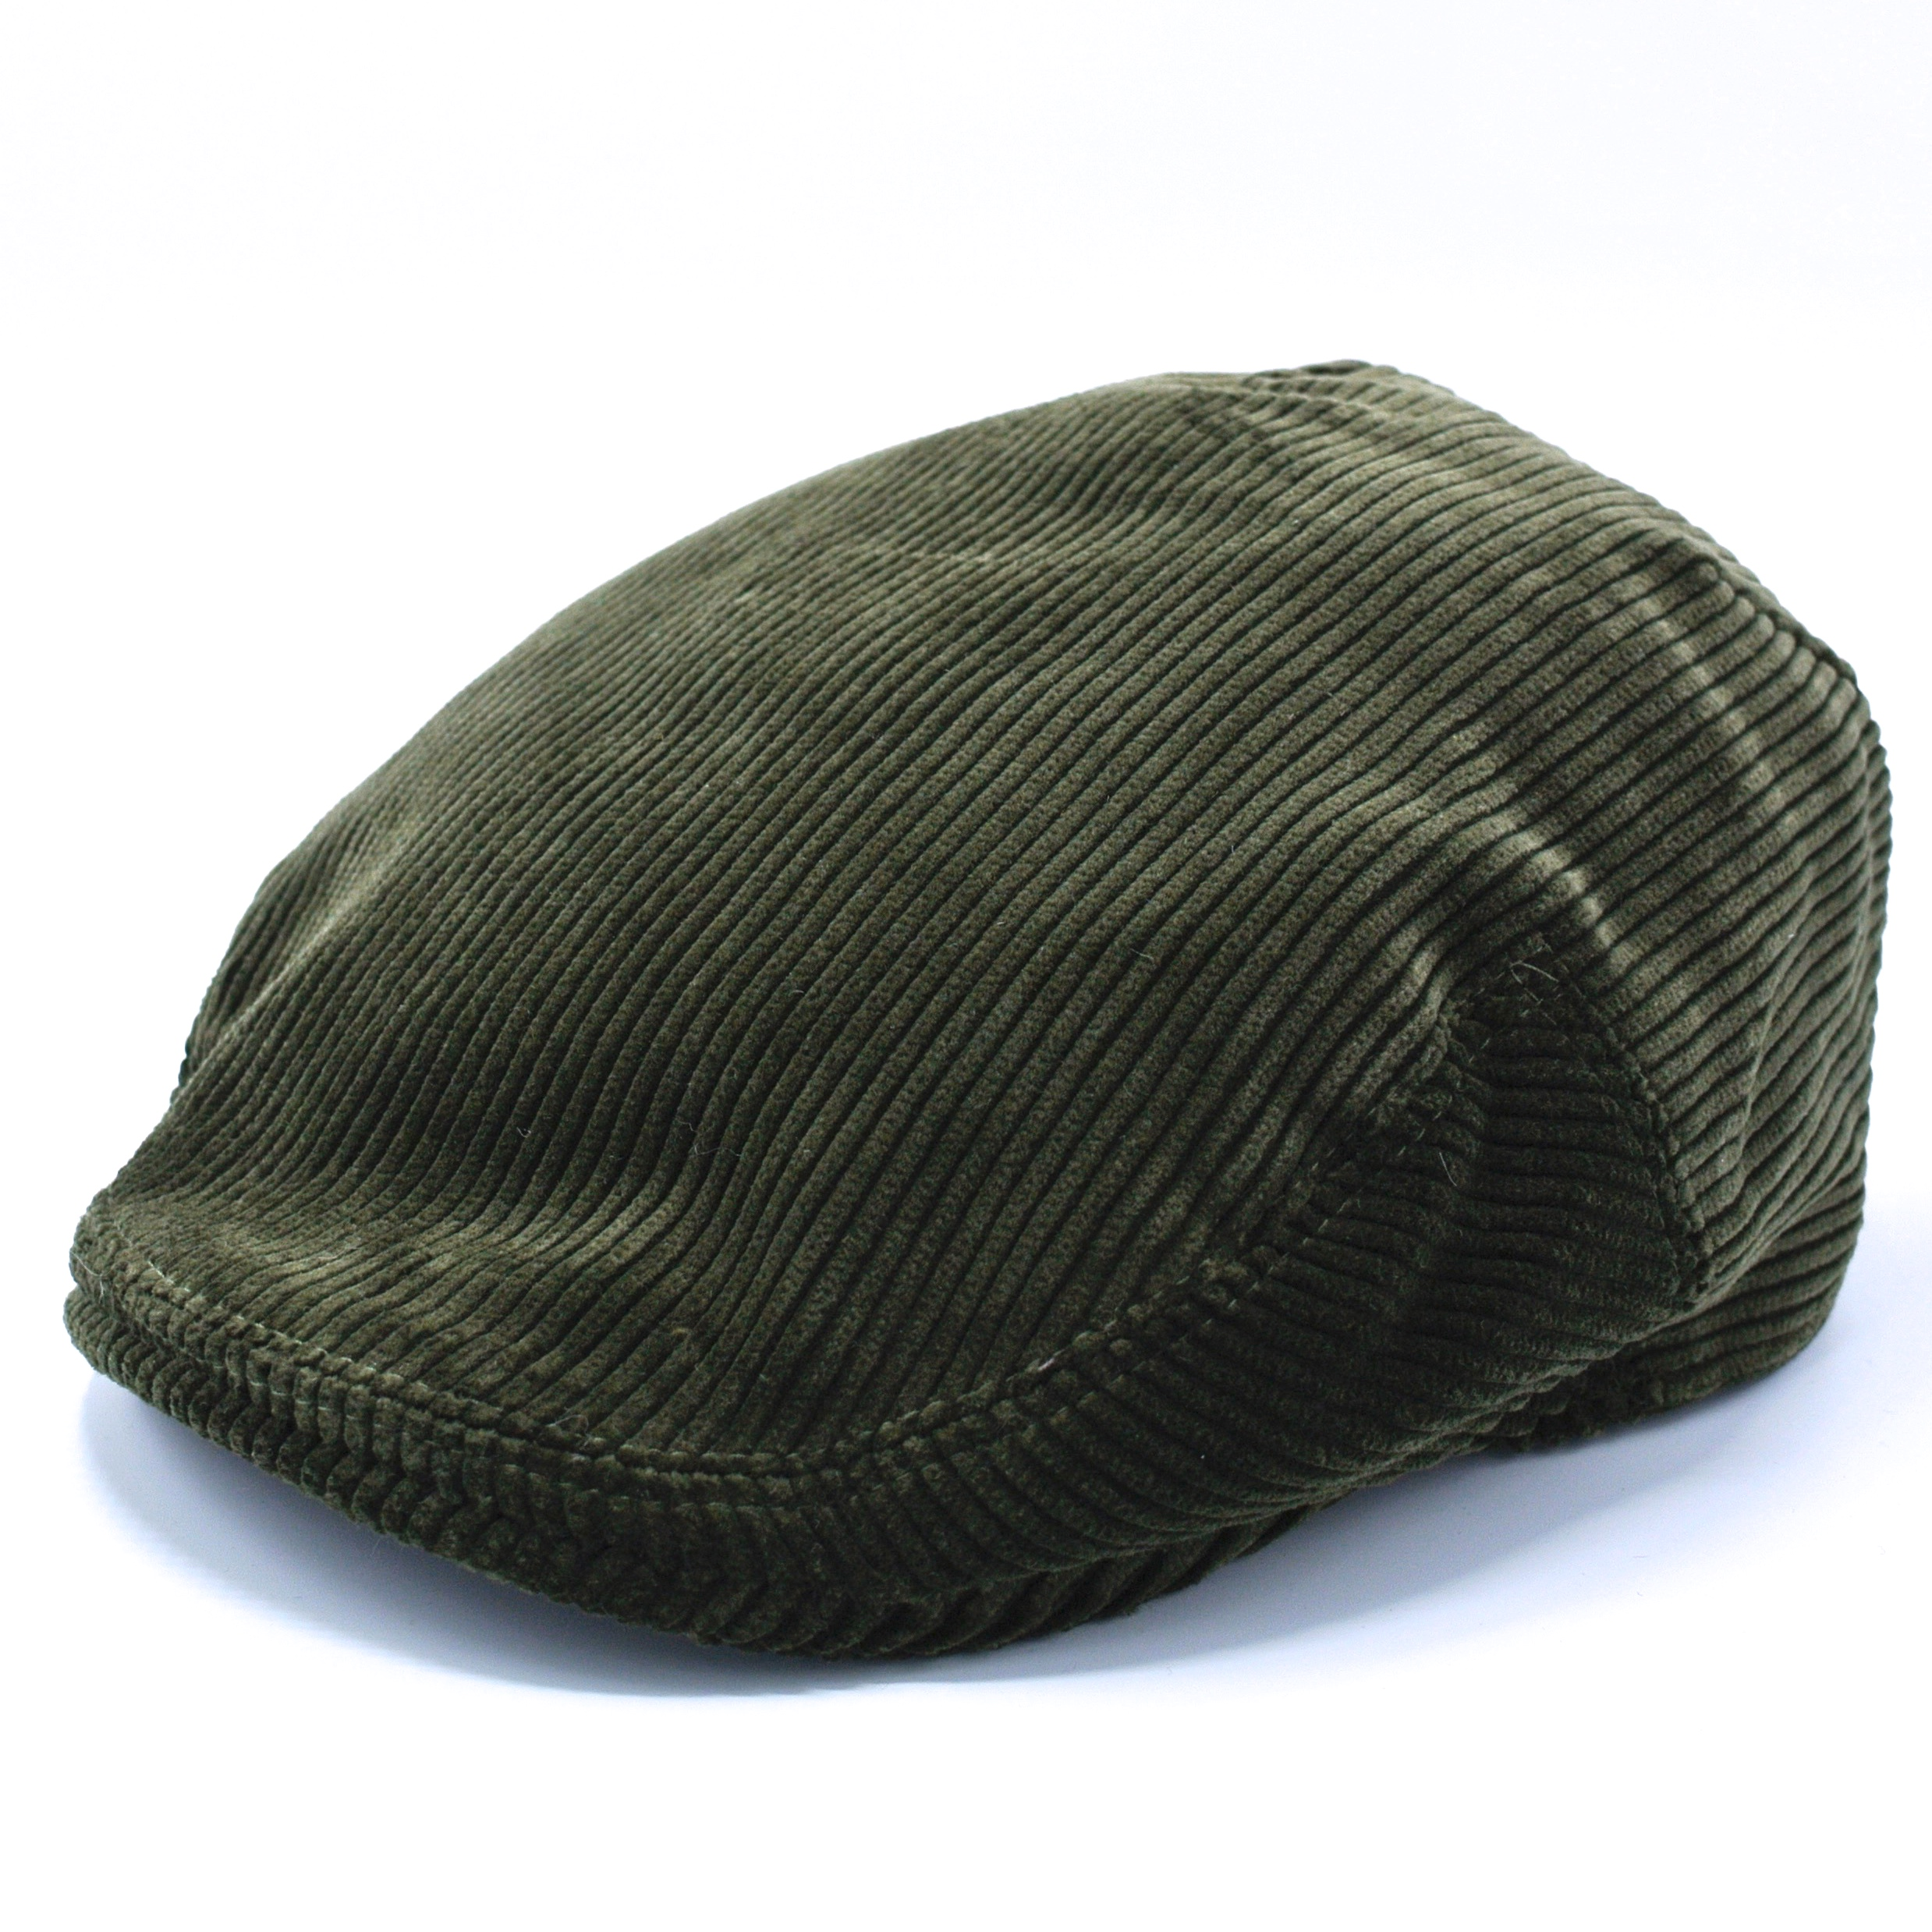 Lawrence and Foster Flat Cap Green Cord